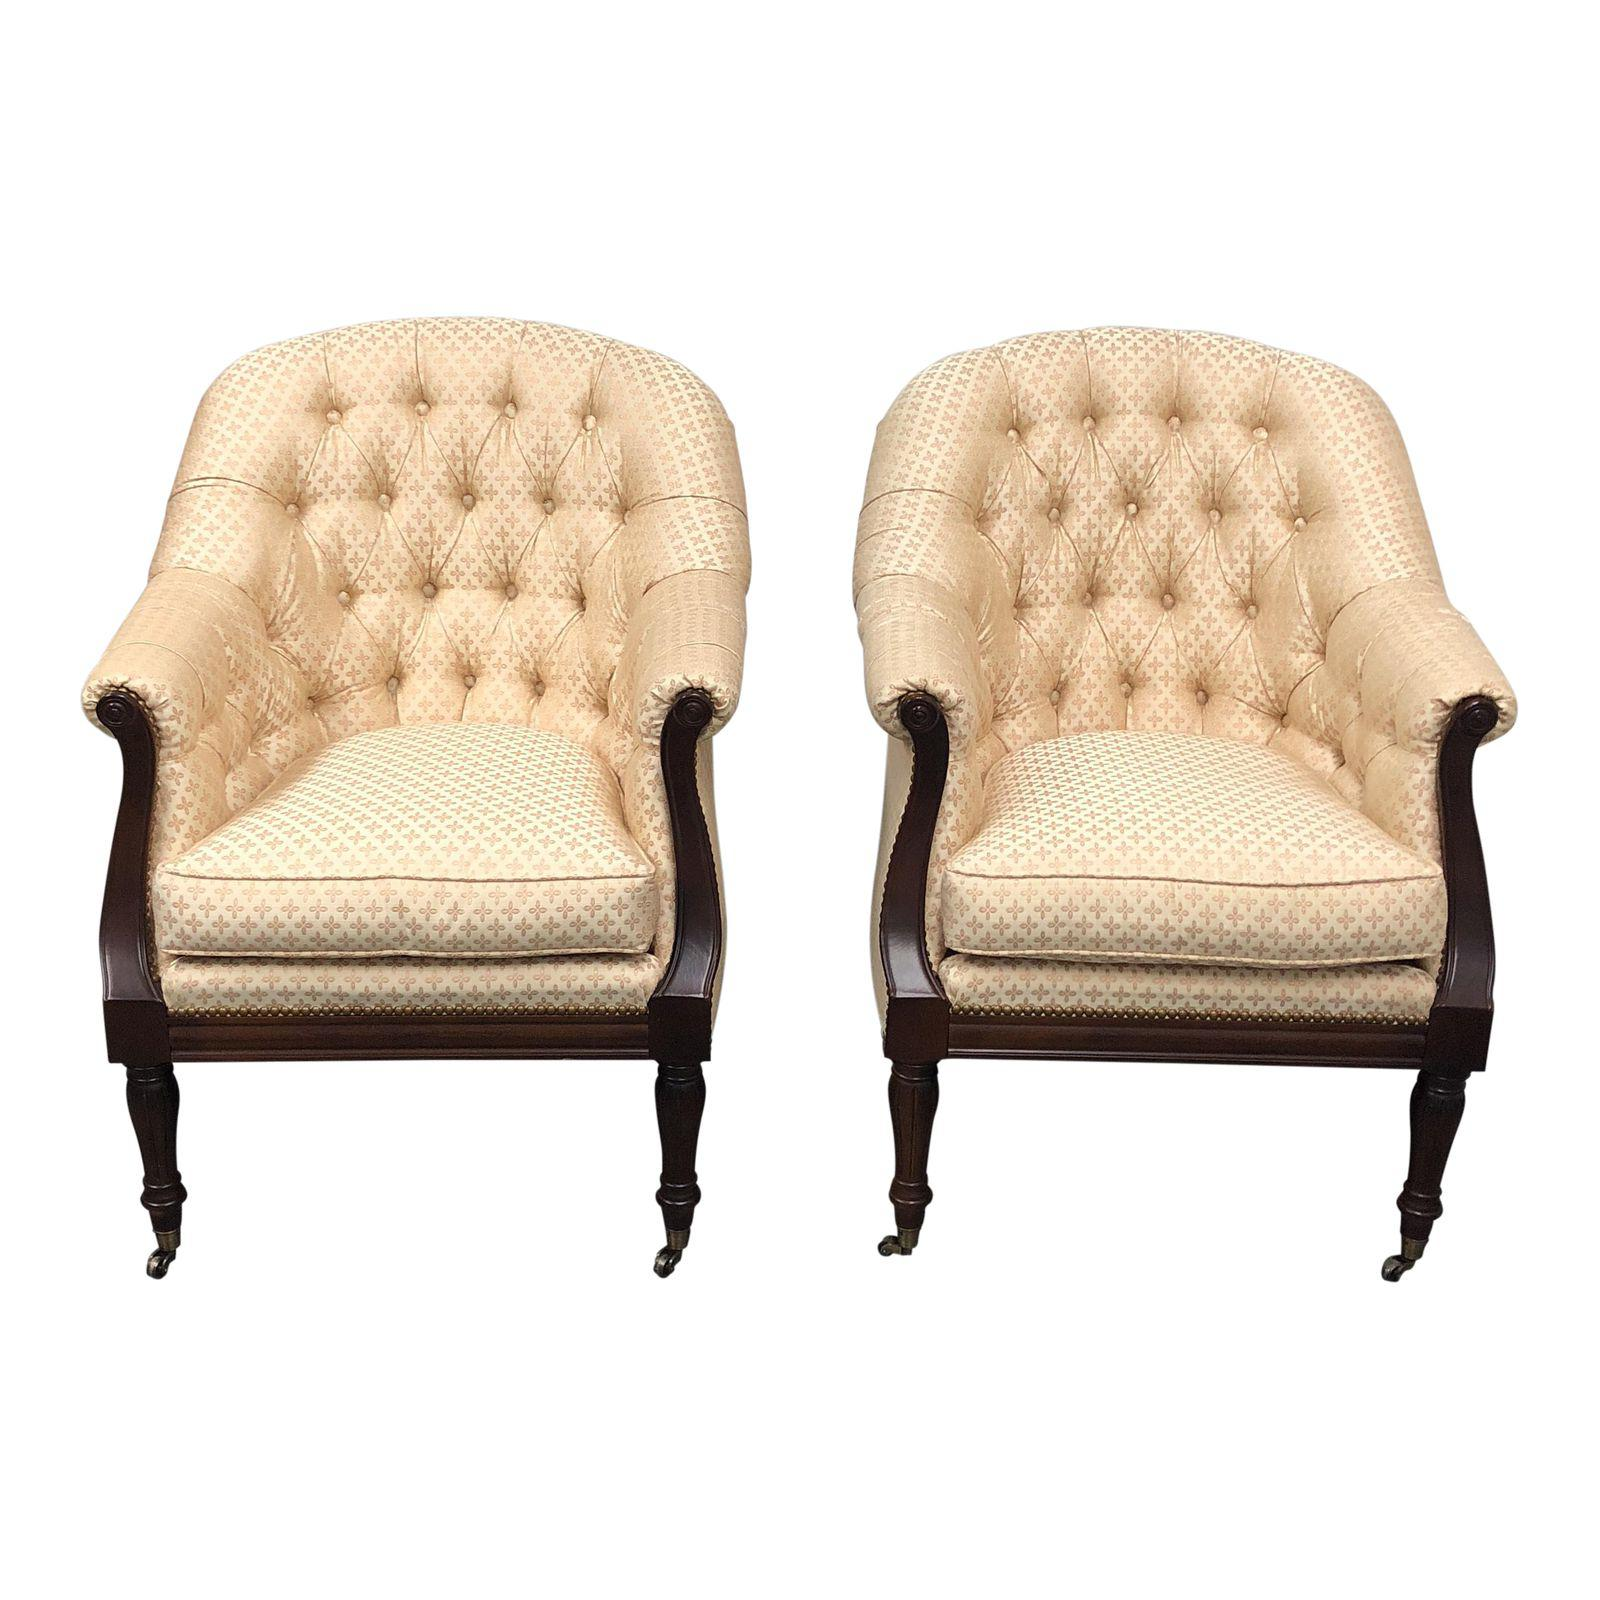 Robert allen richmond accent chairs a pair original price 3315 00